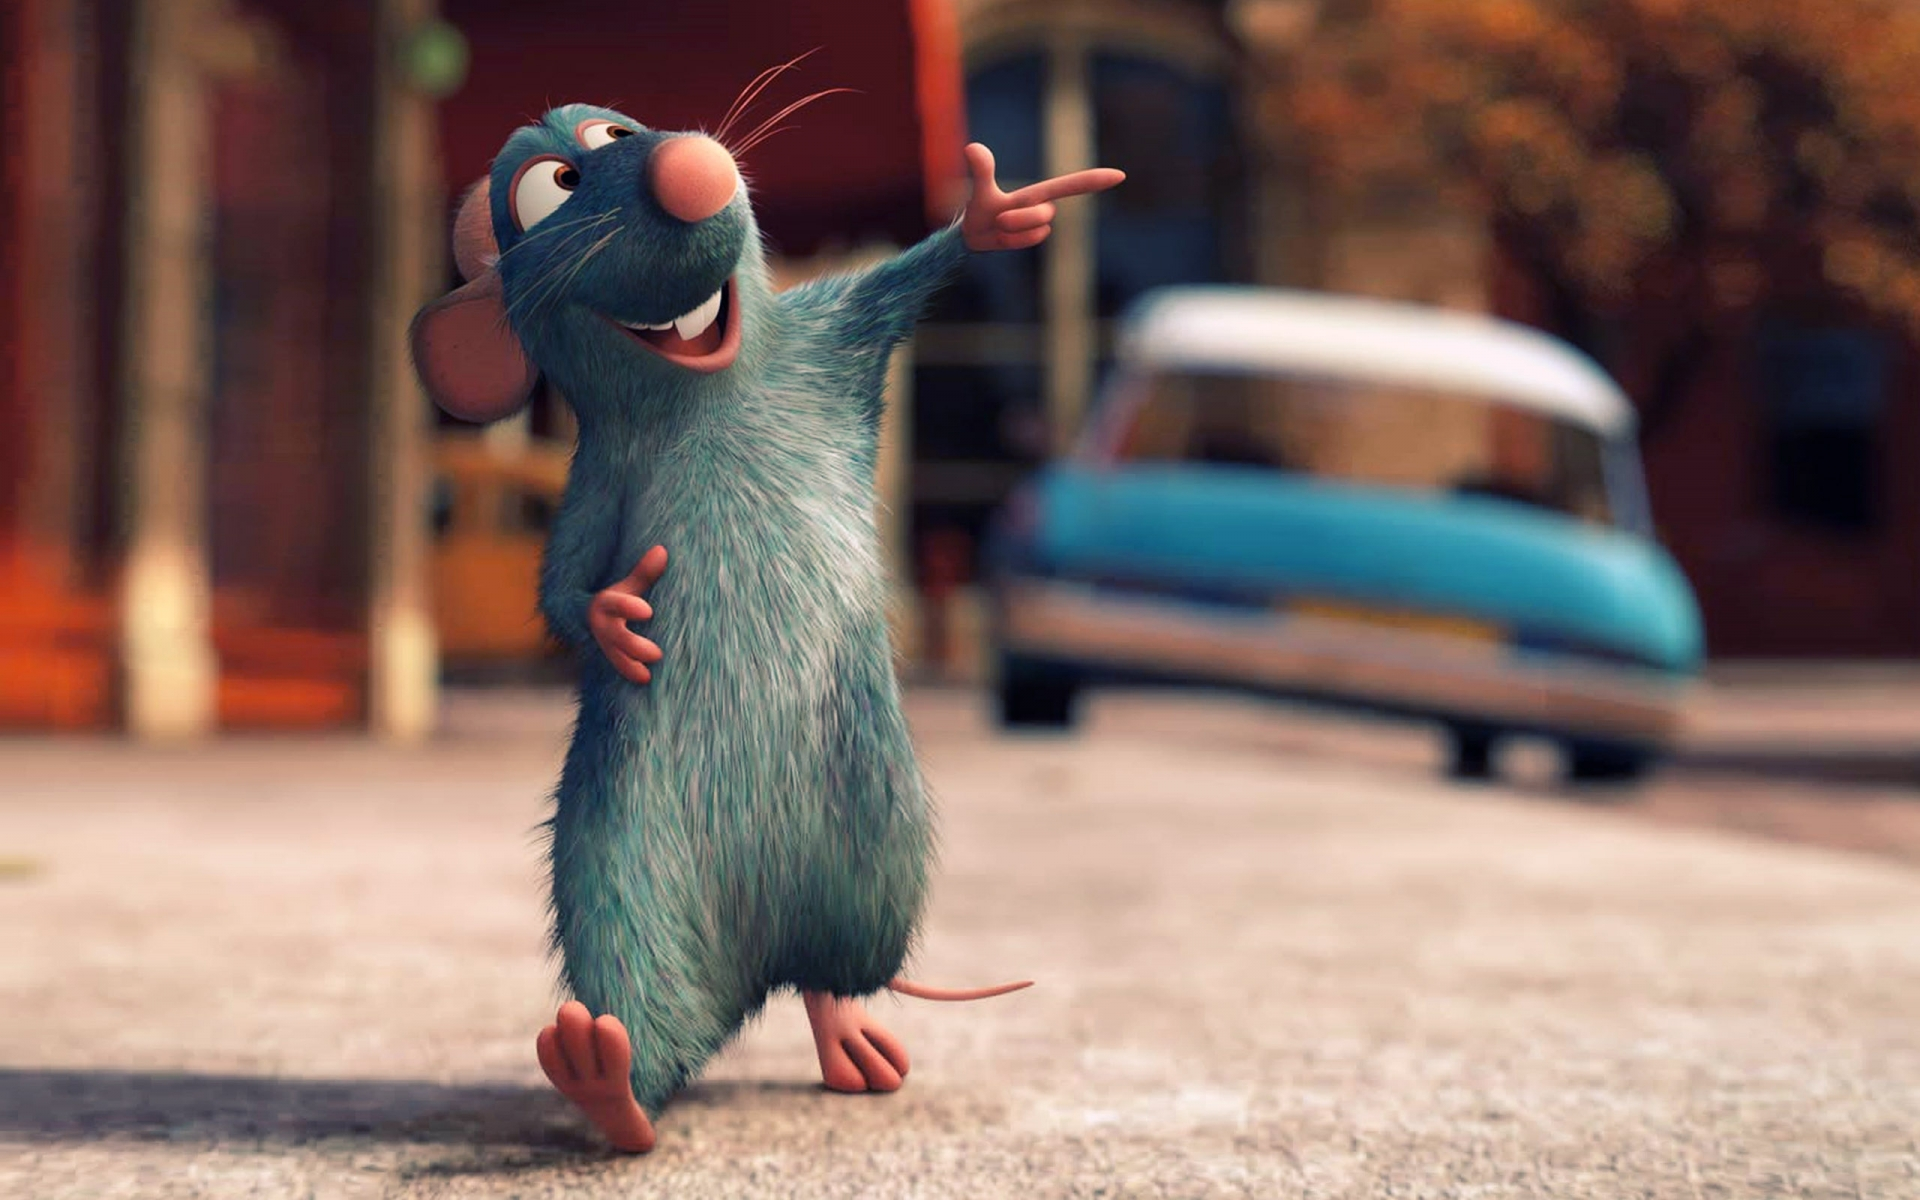 Ratatouille Wallpapers, Pictures, Images